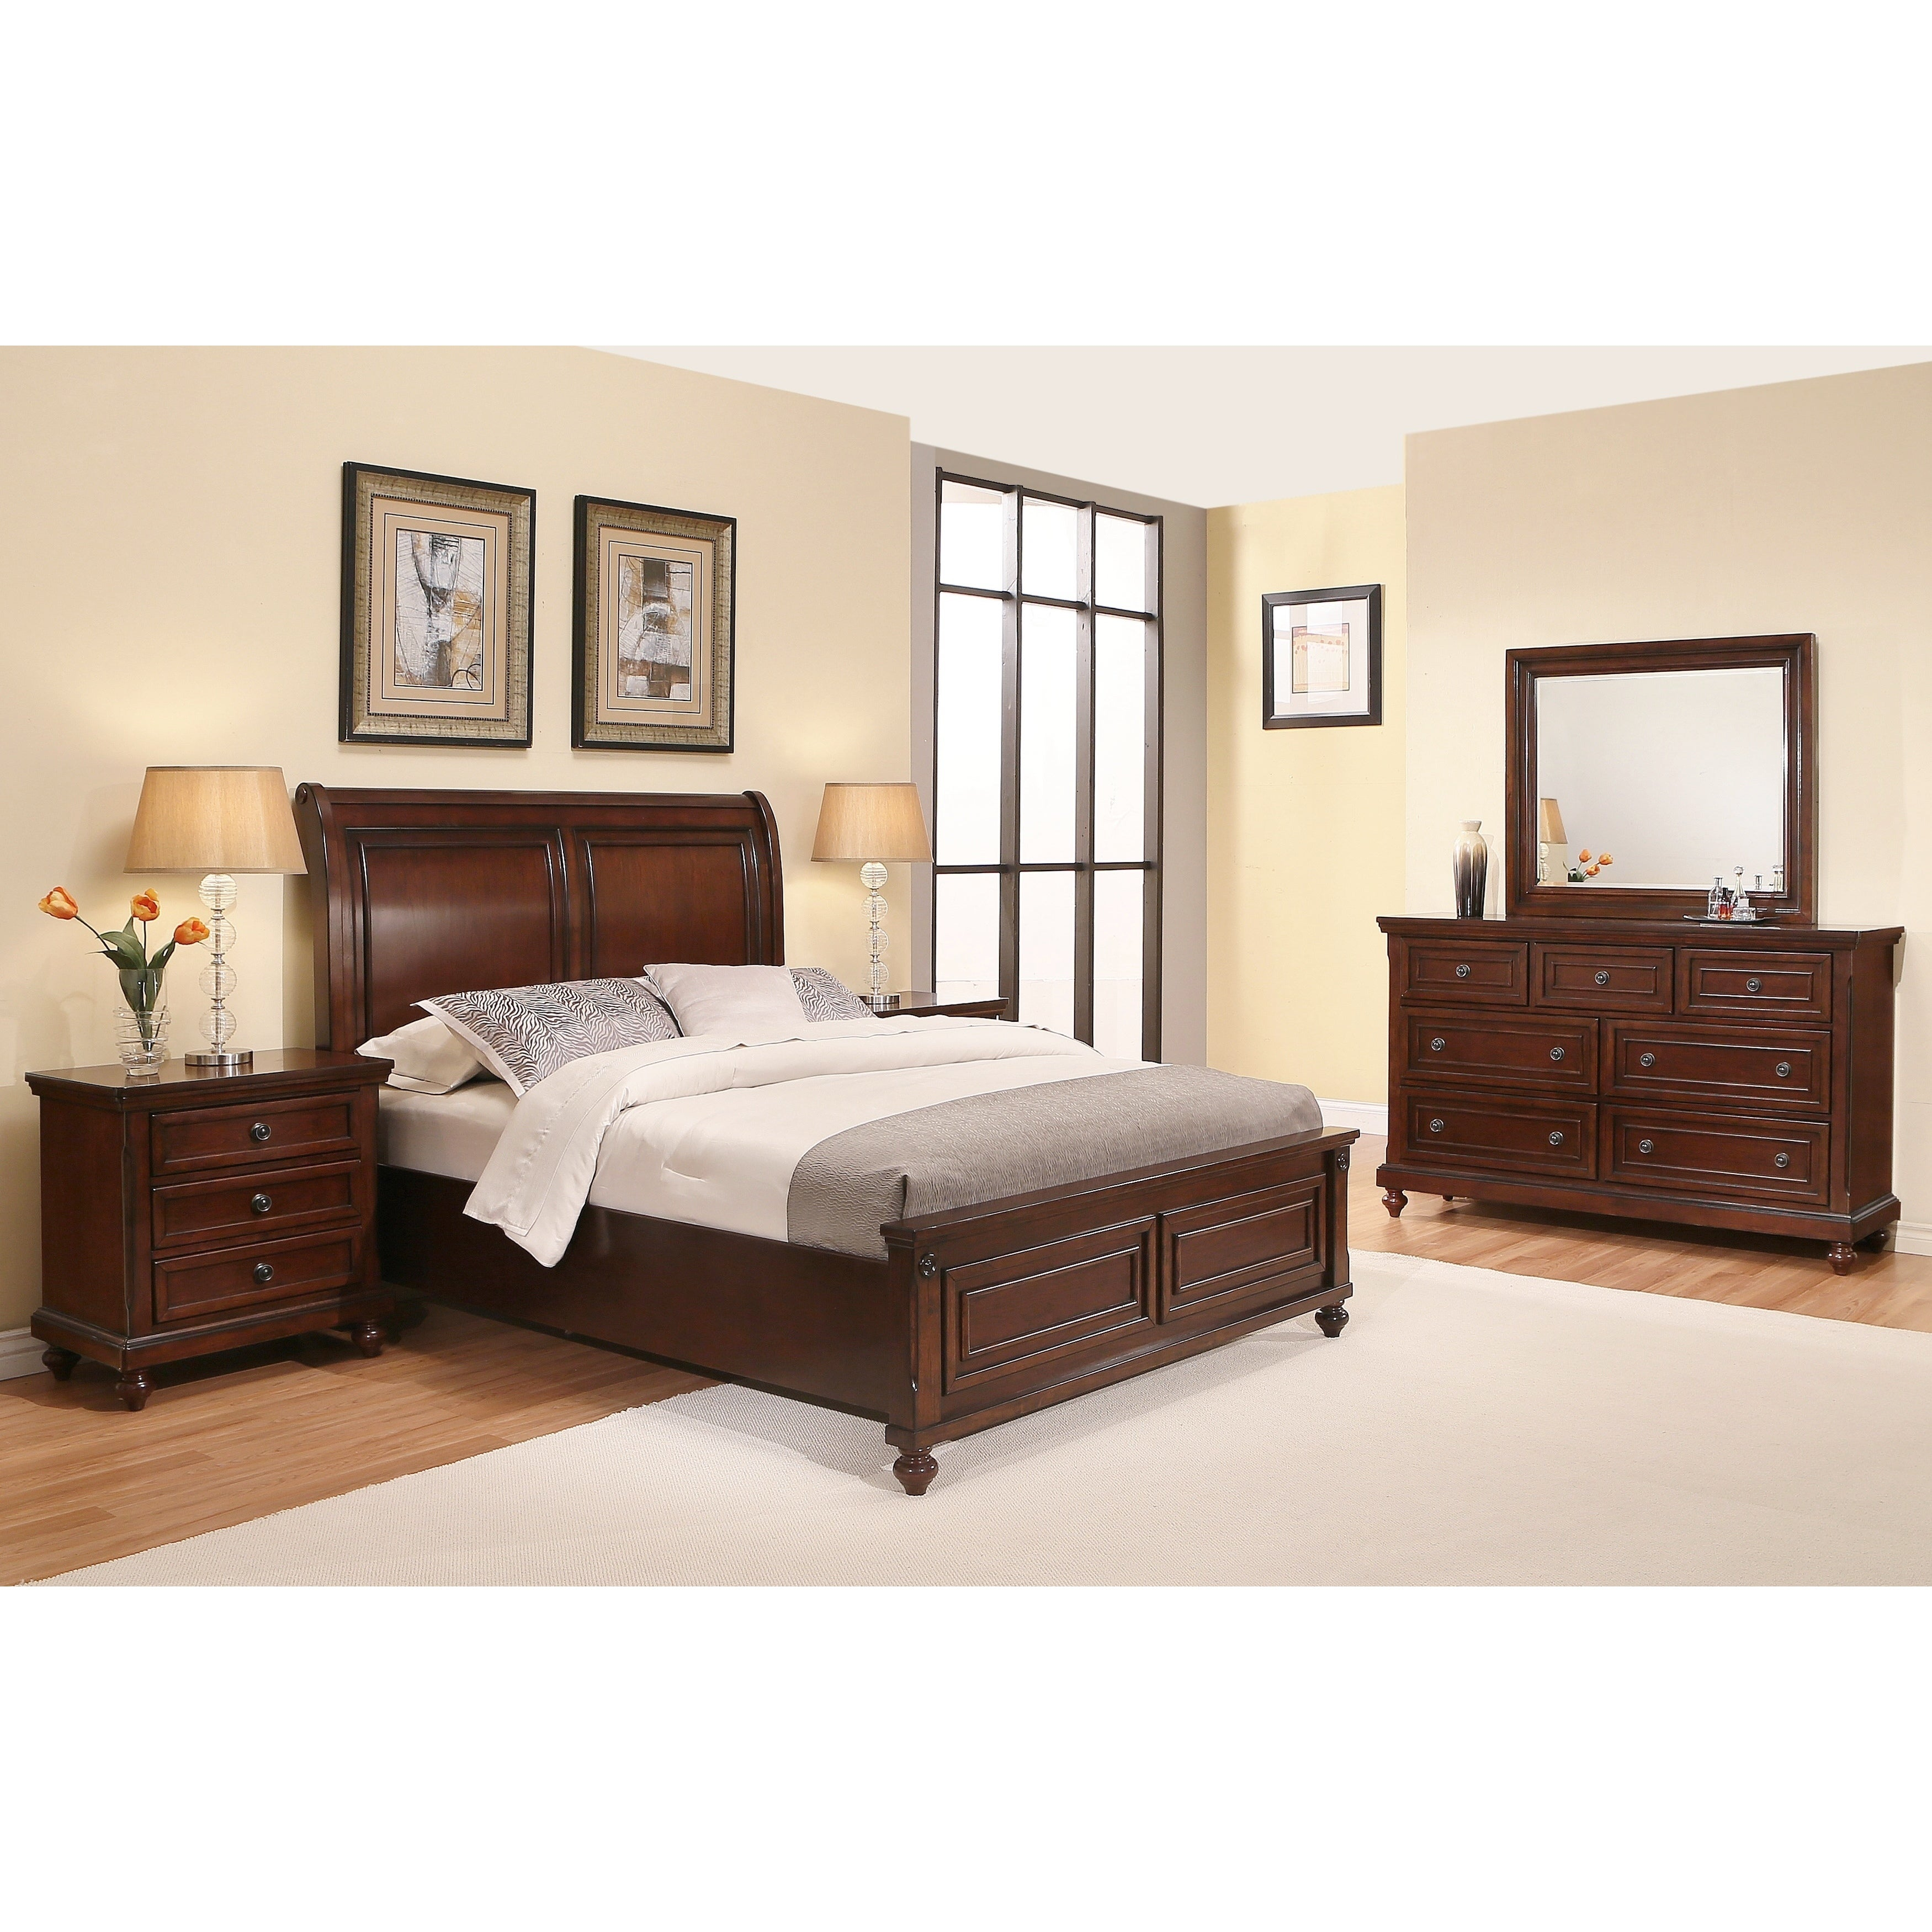 Buy Cherry Finish Bedroom Sets Online at Overstock | Our ...